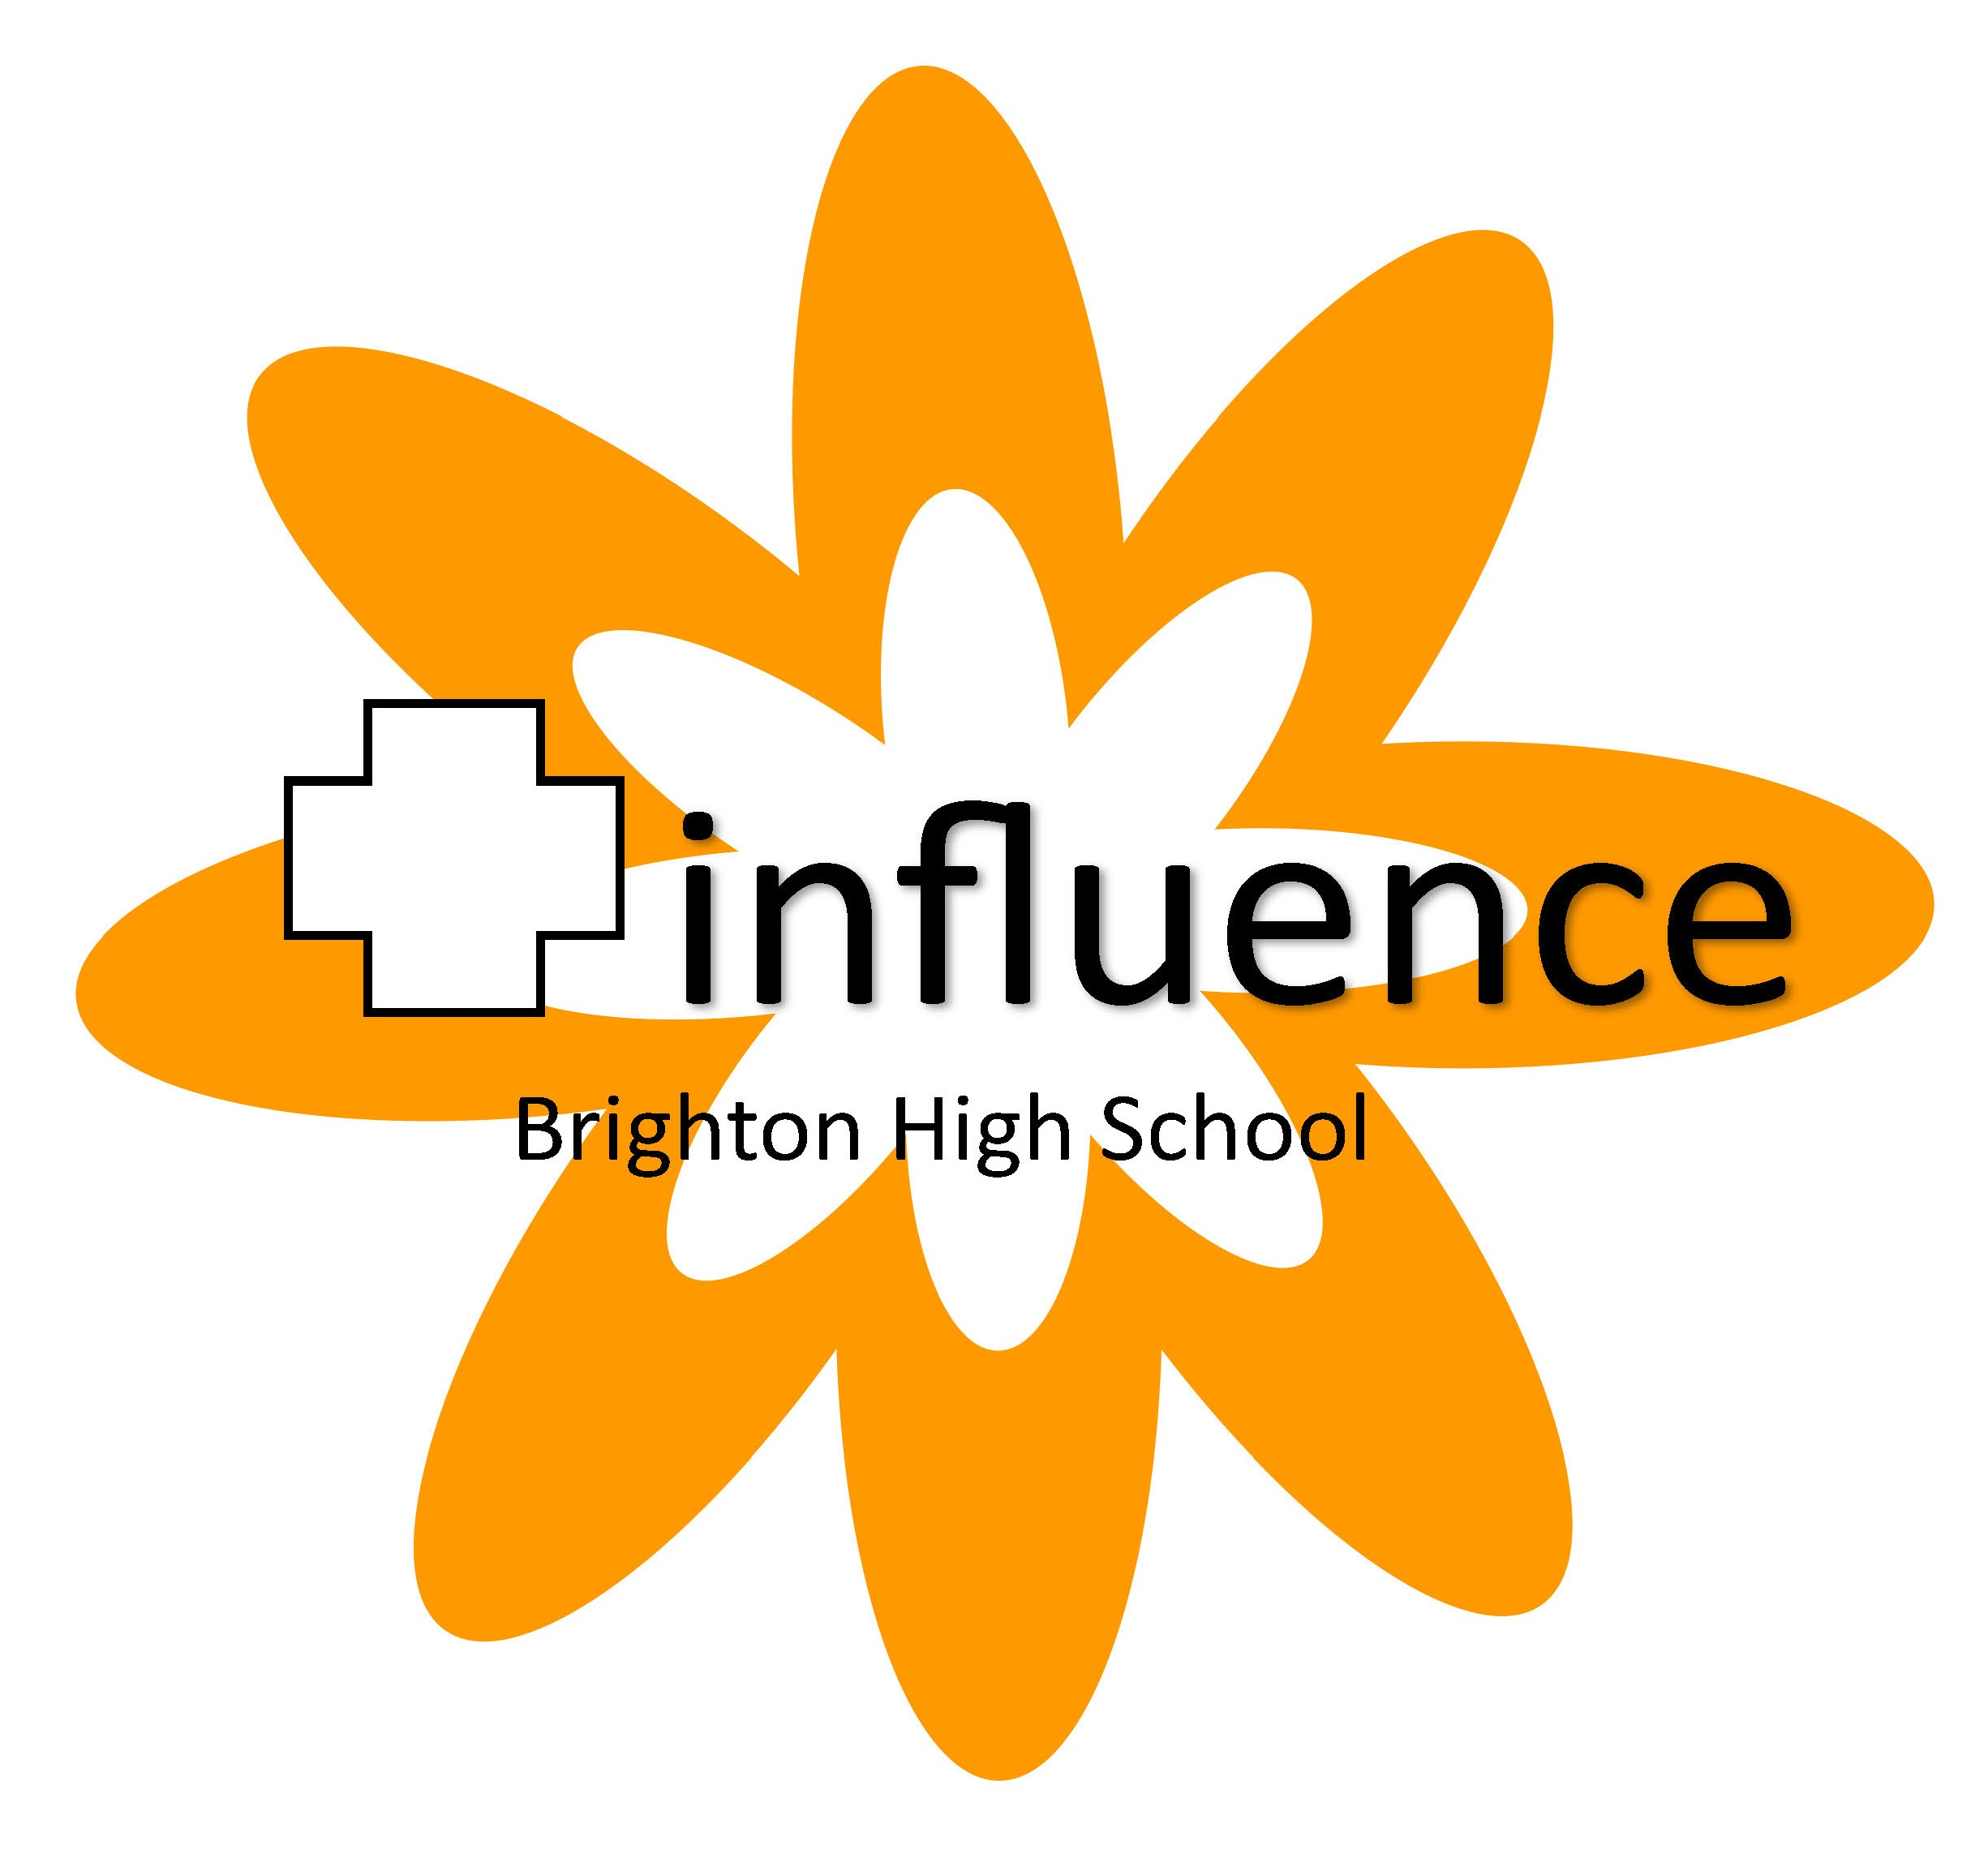 _influence_logo.jpg